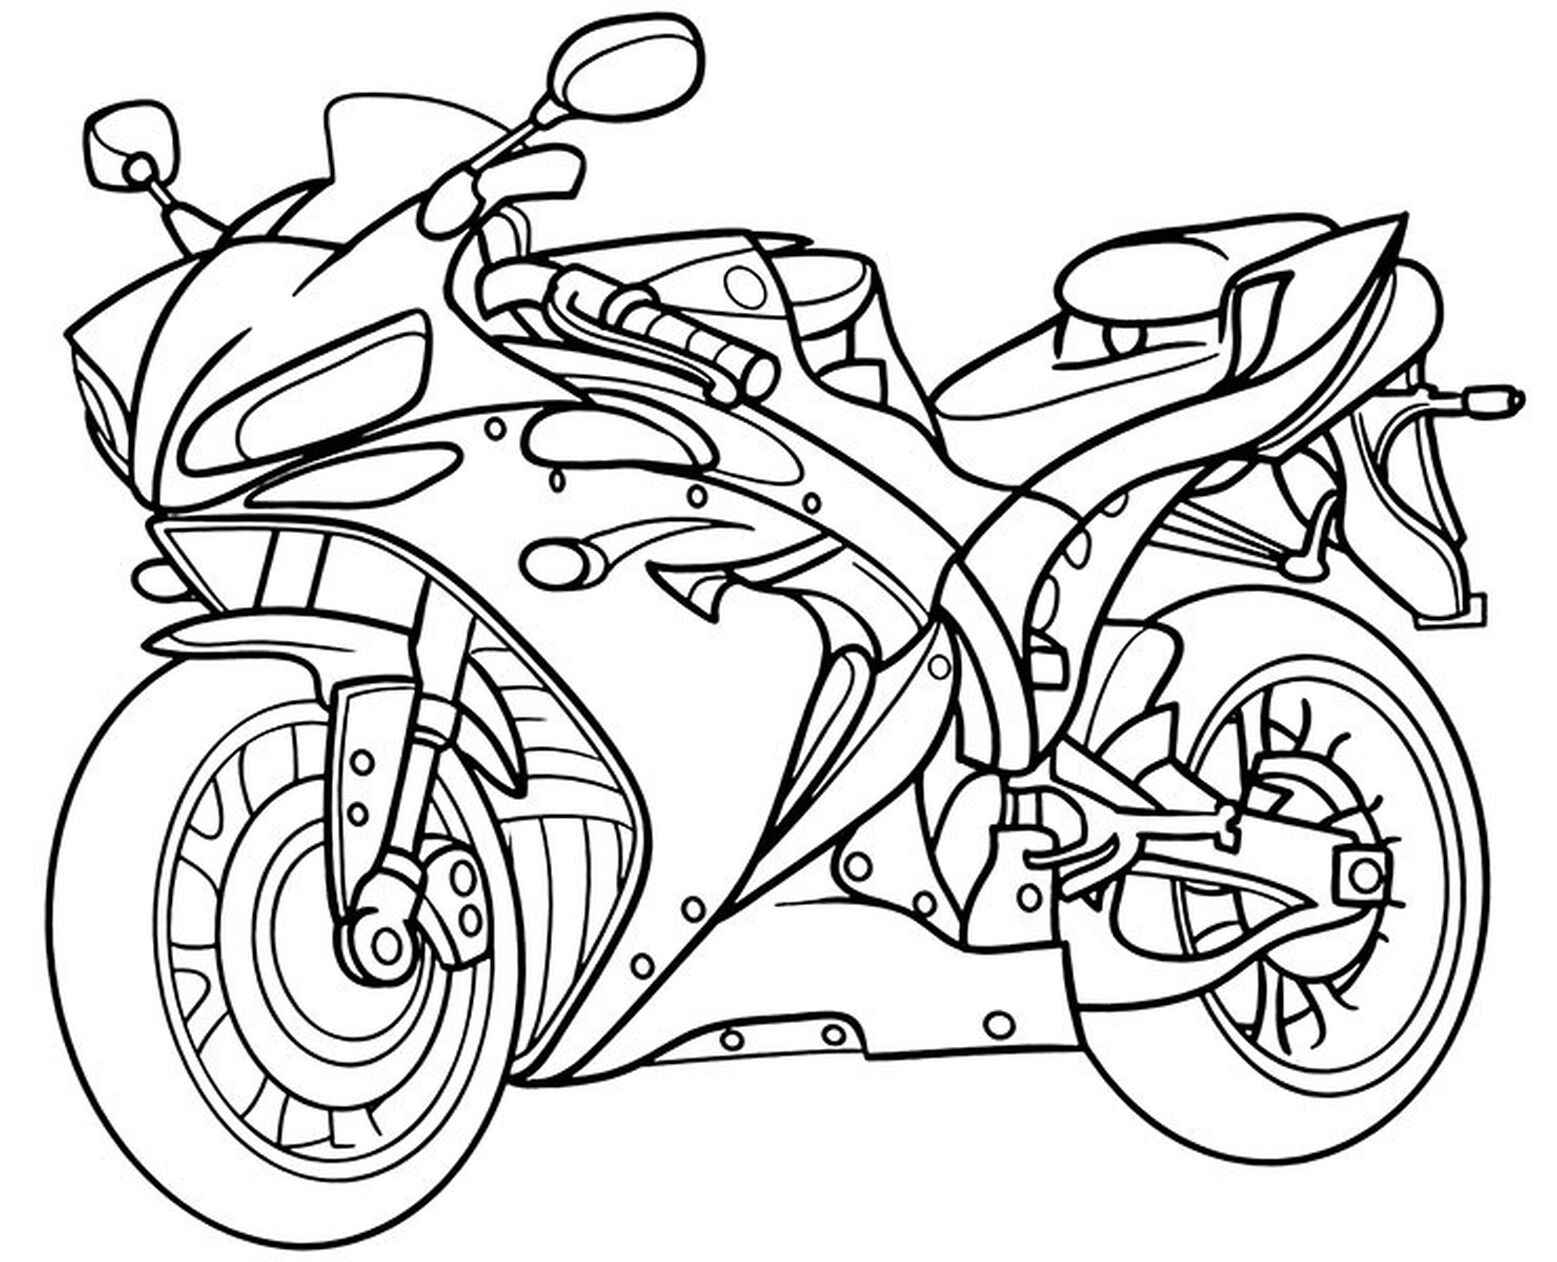 Fast Motorbike Coloring Page